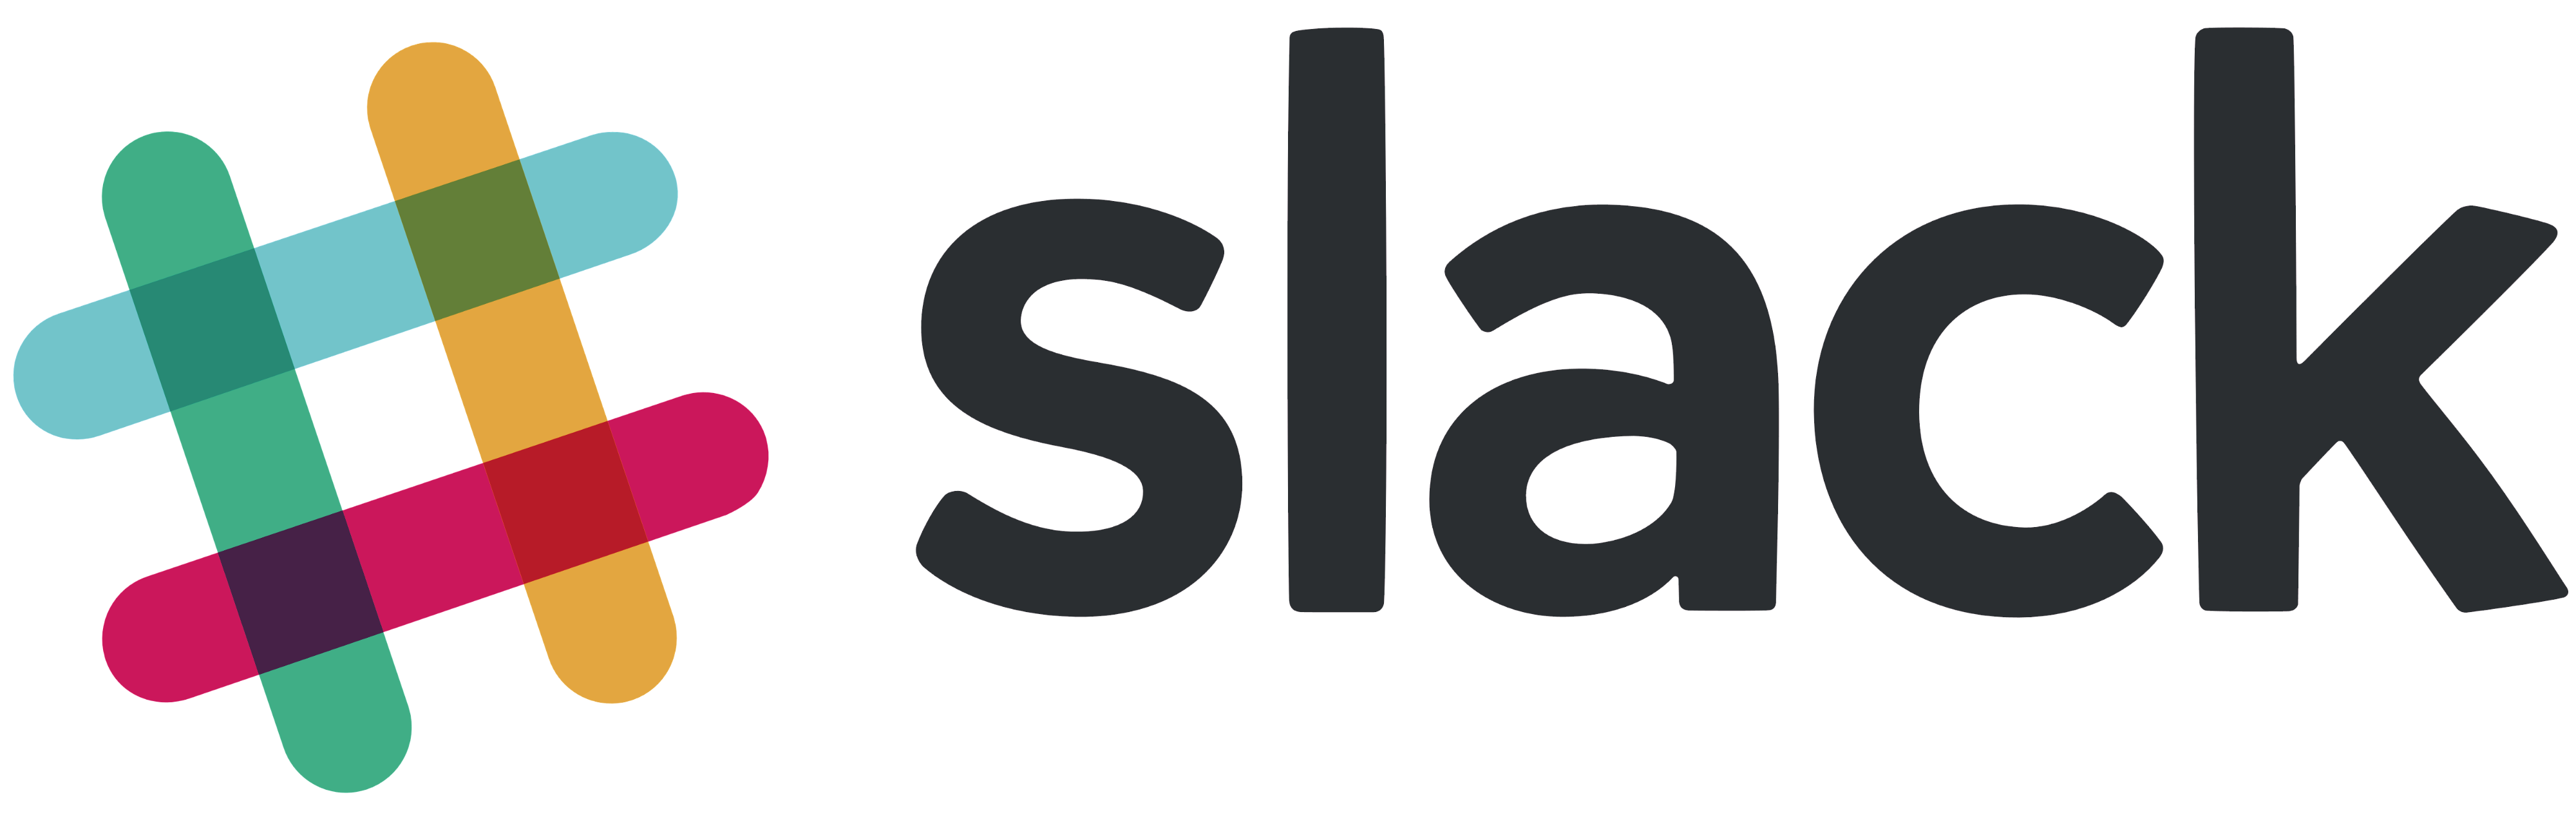 ユーザーがSlackを嫌いにならないためにAIを使うSlack. Slack Hopes Its AI Will Keep You from… |  by Kan Nishida | Medium